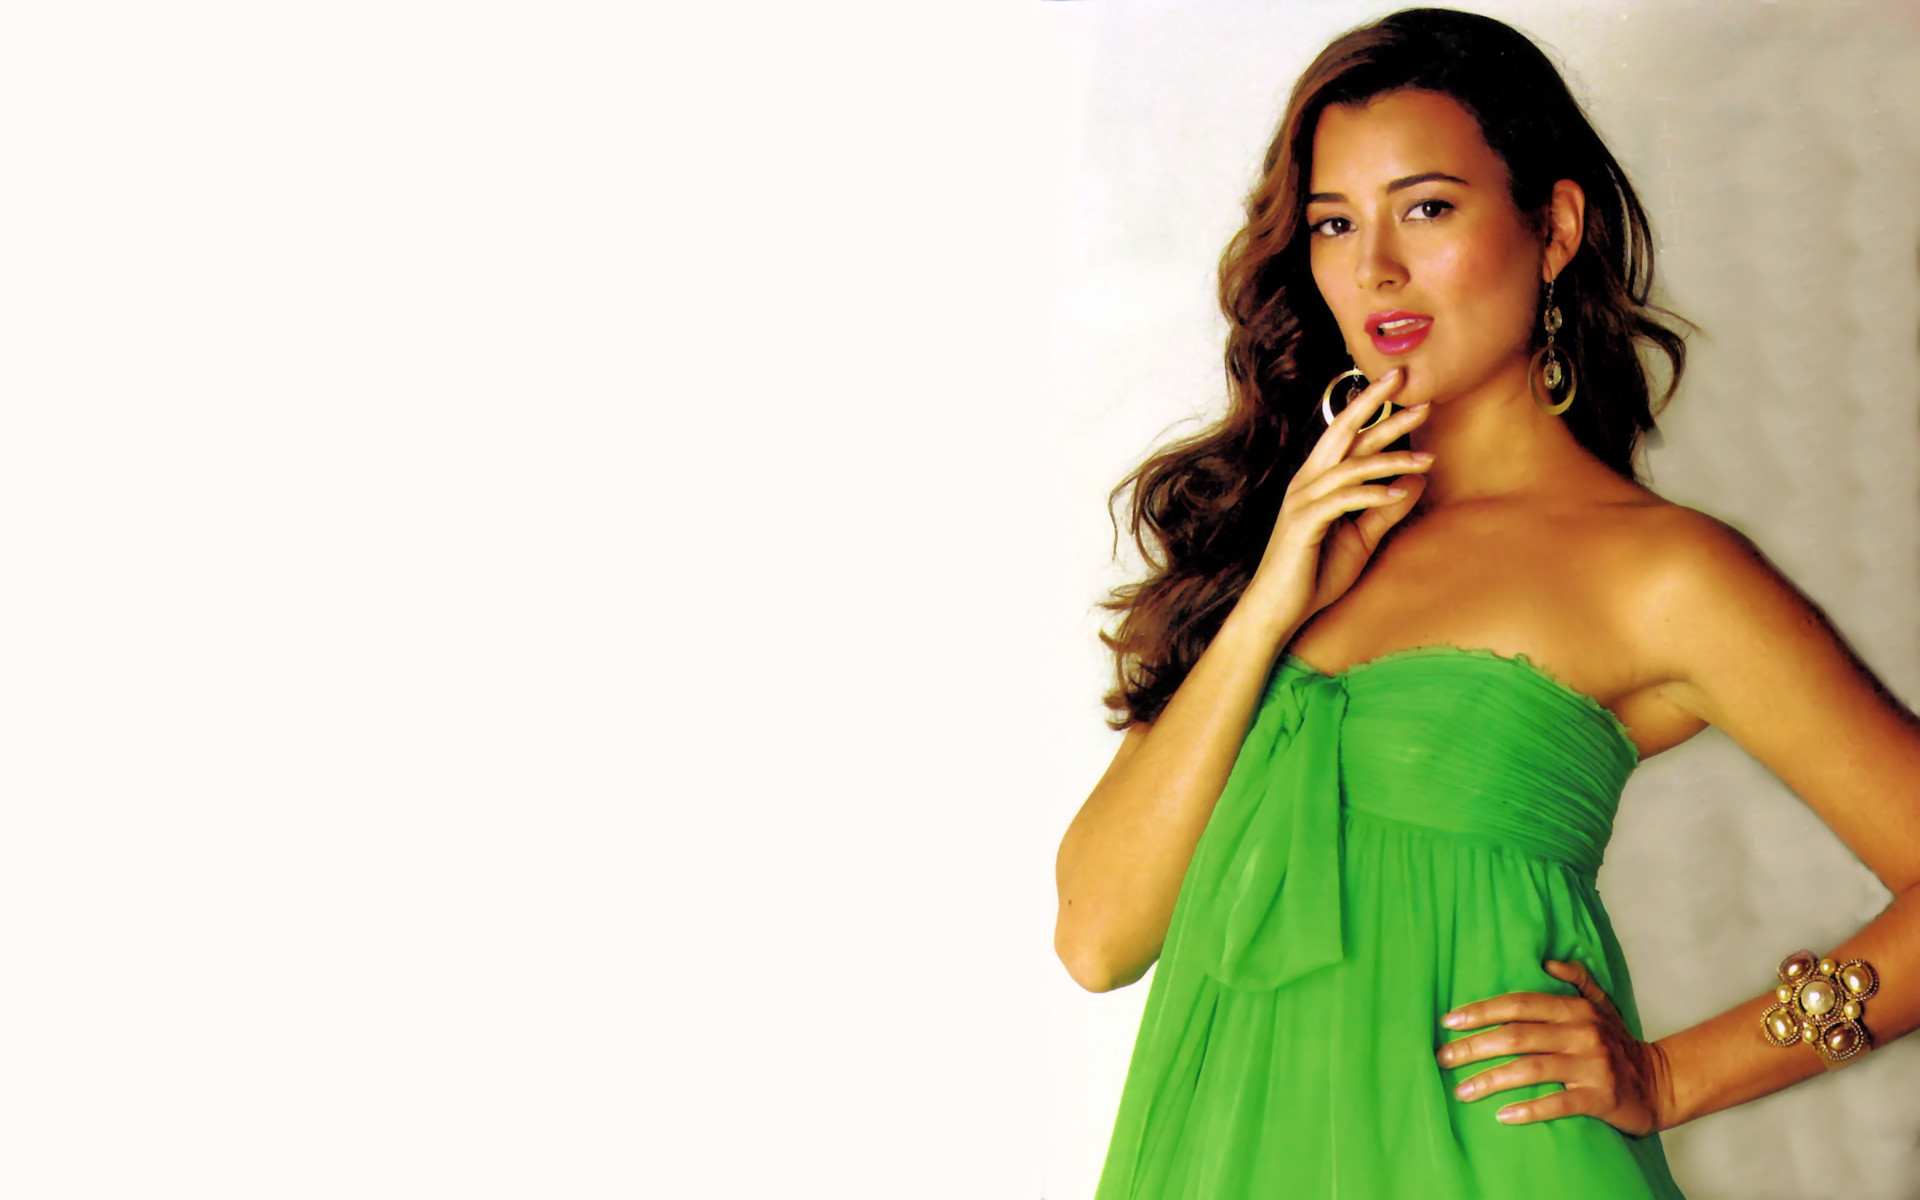 Ziva David Wallpaper 67 Images